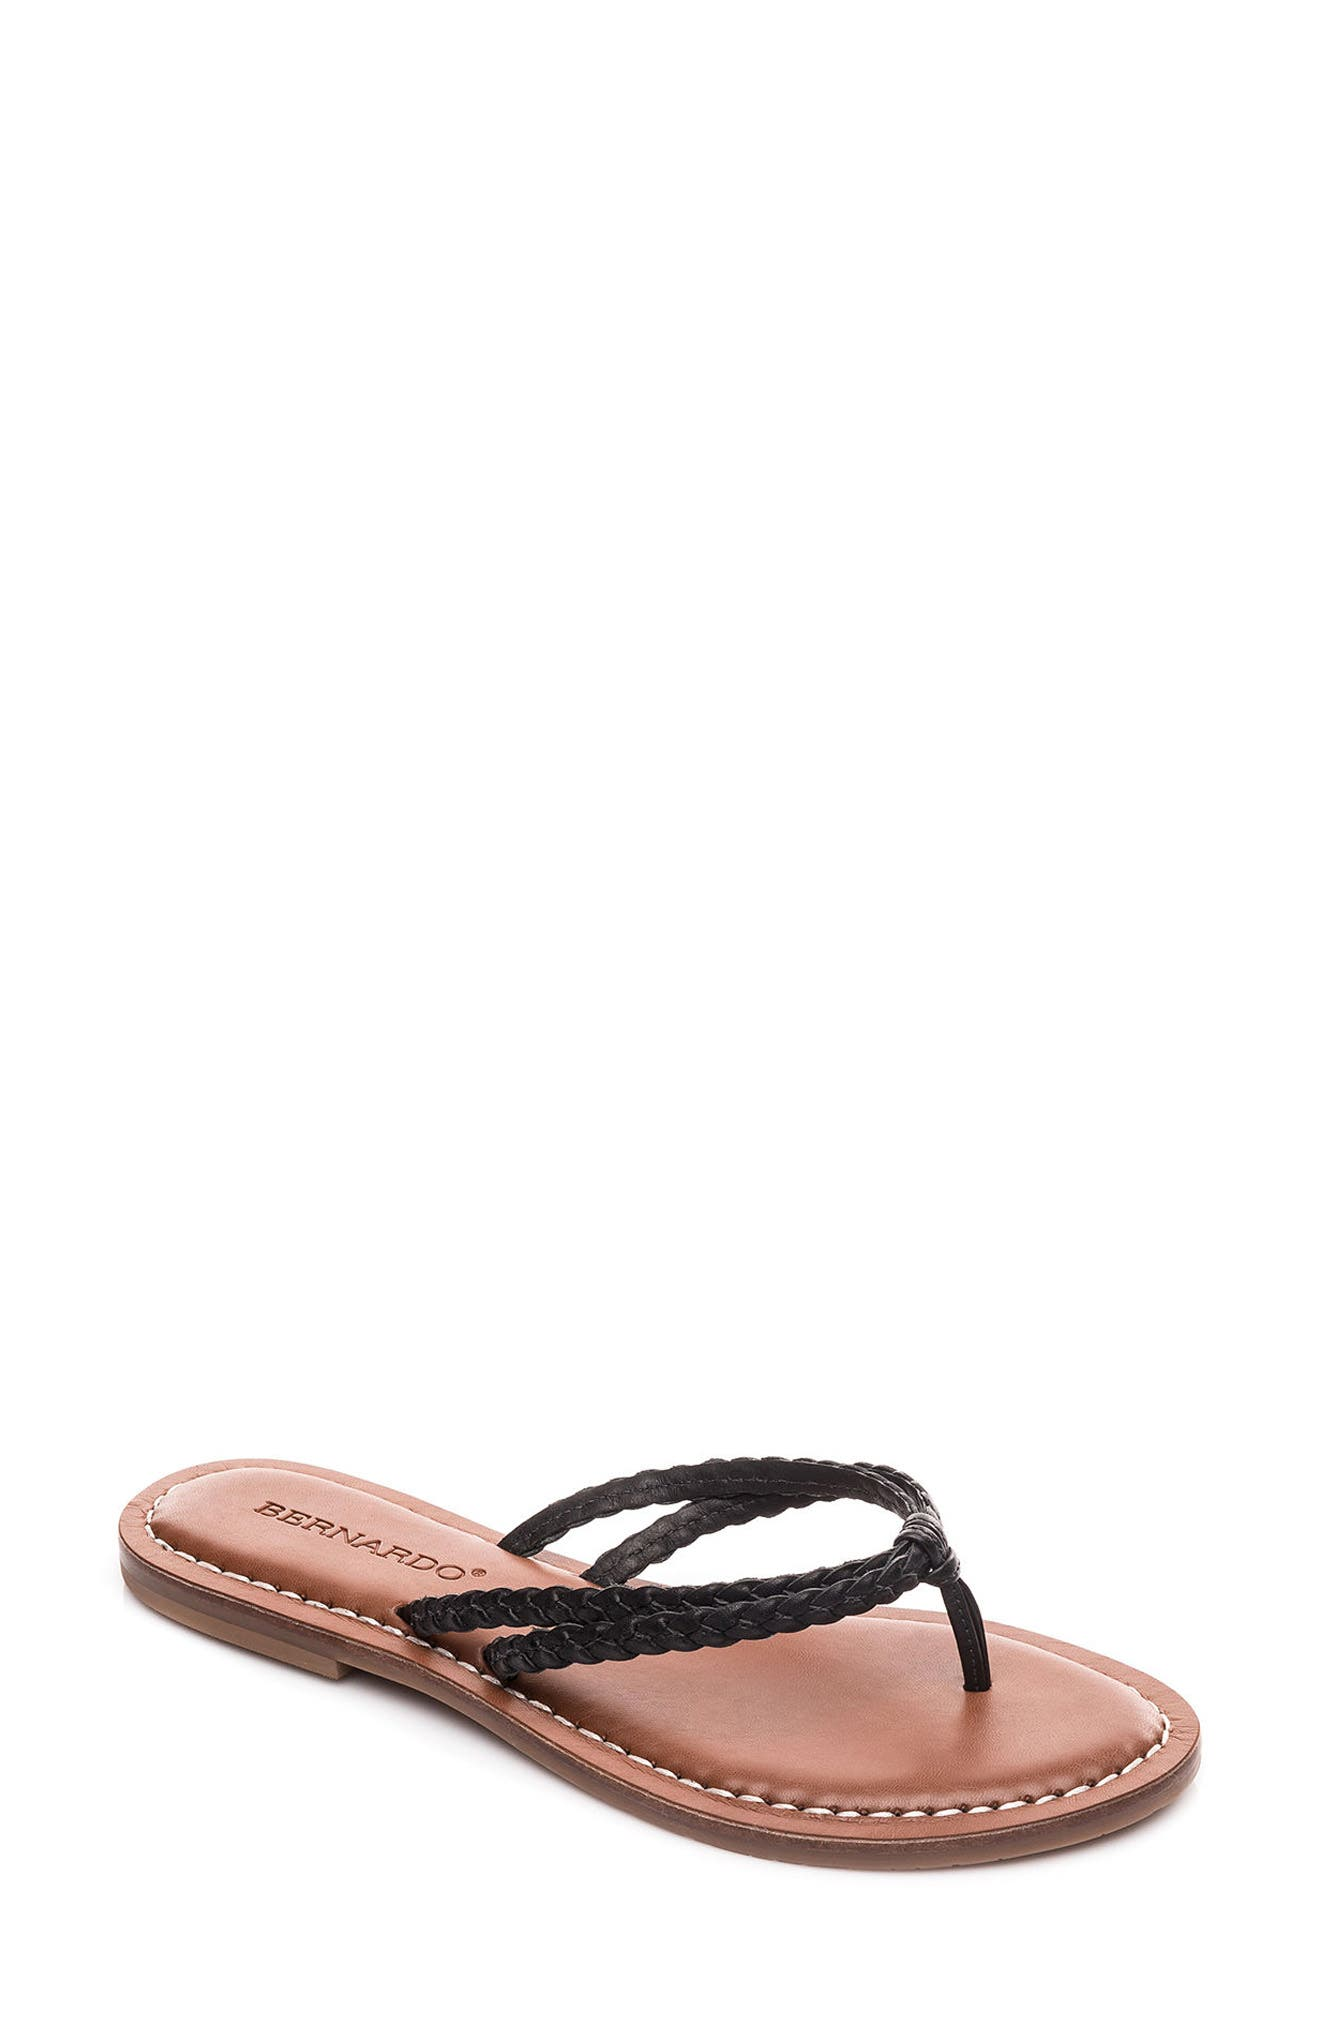 Bernardo Greta Braided Strap Sandal,                         Main,                         color,